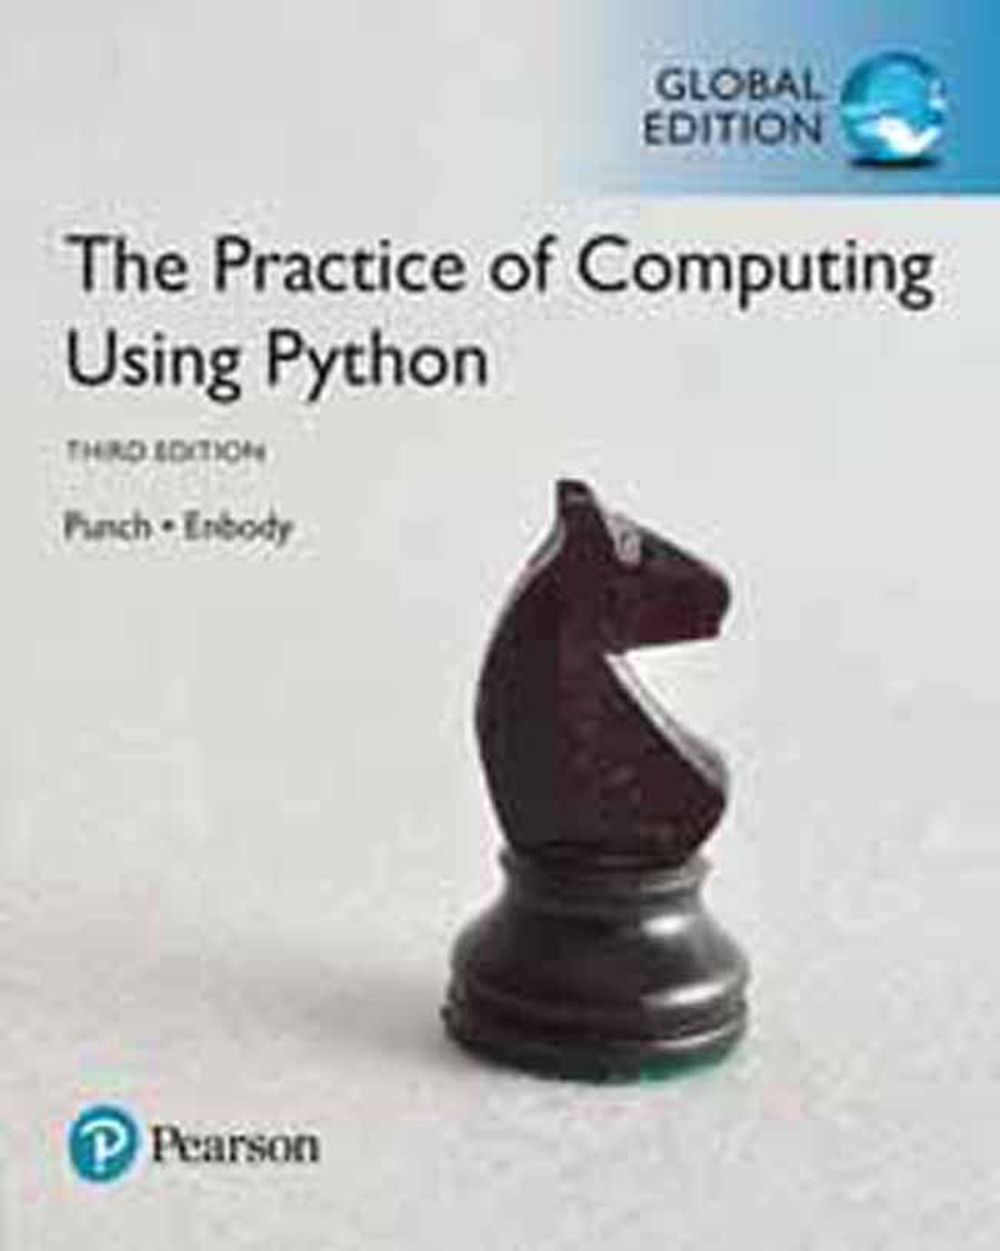 THE PRACTICE OF COMPUTING USING PYTHON 3/E (GE)